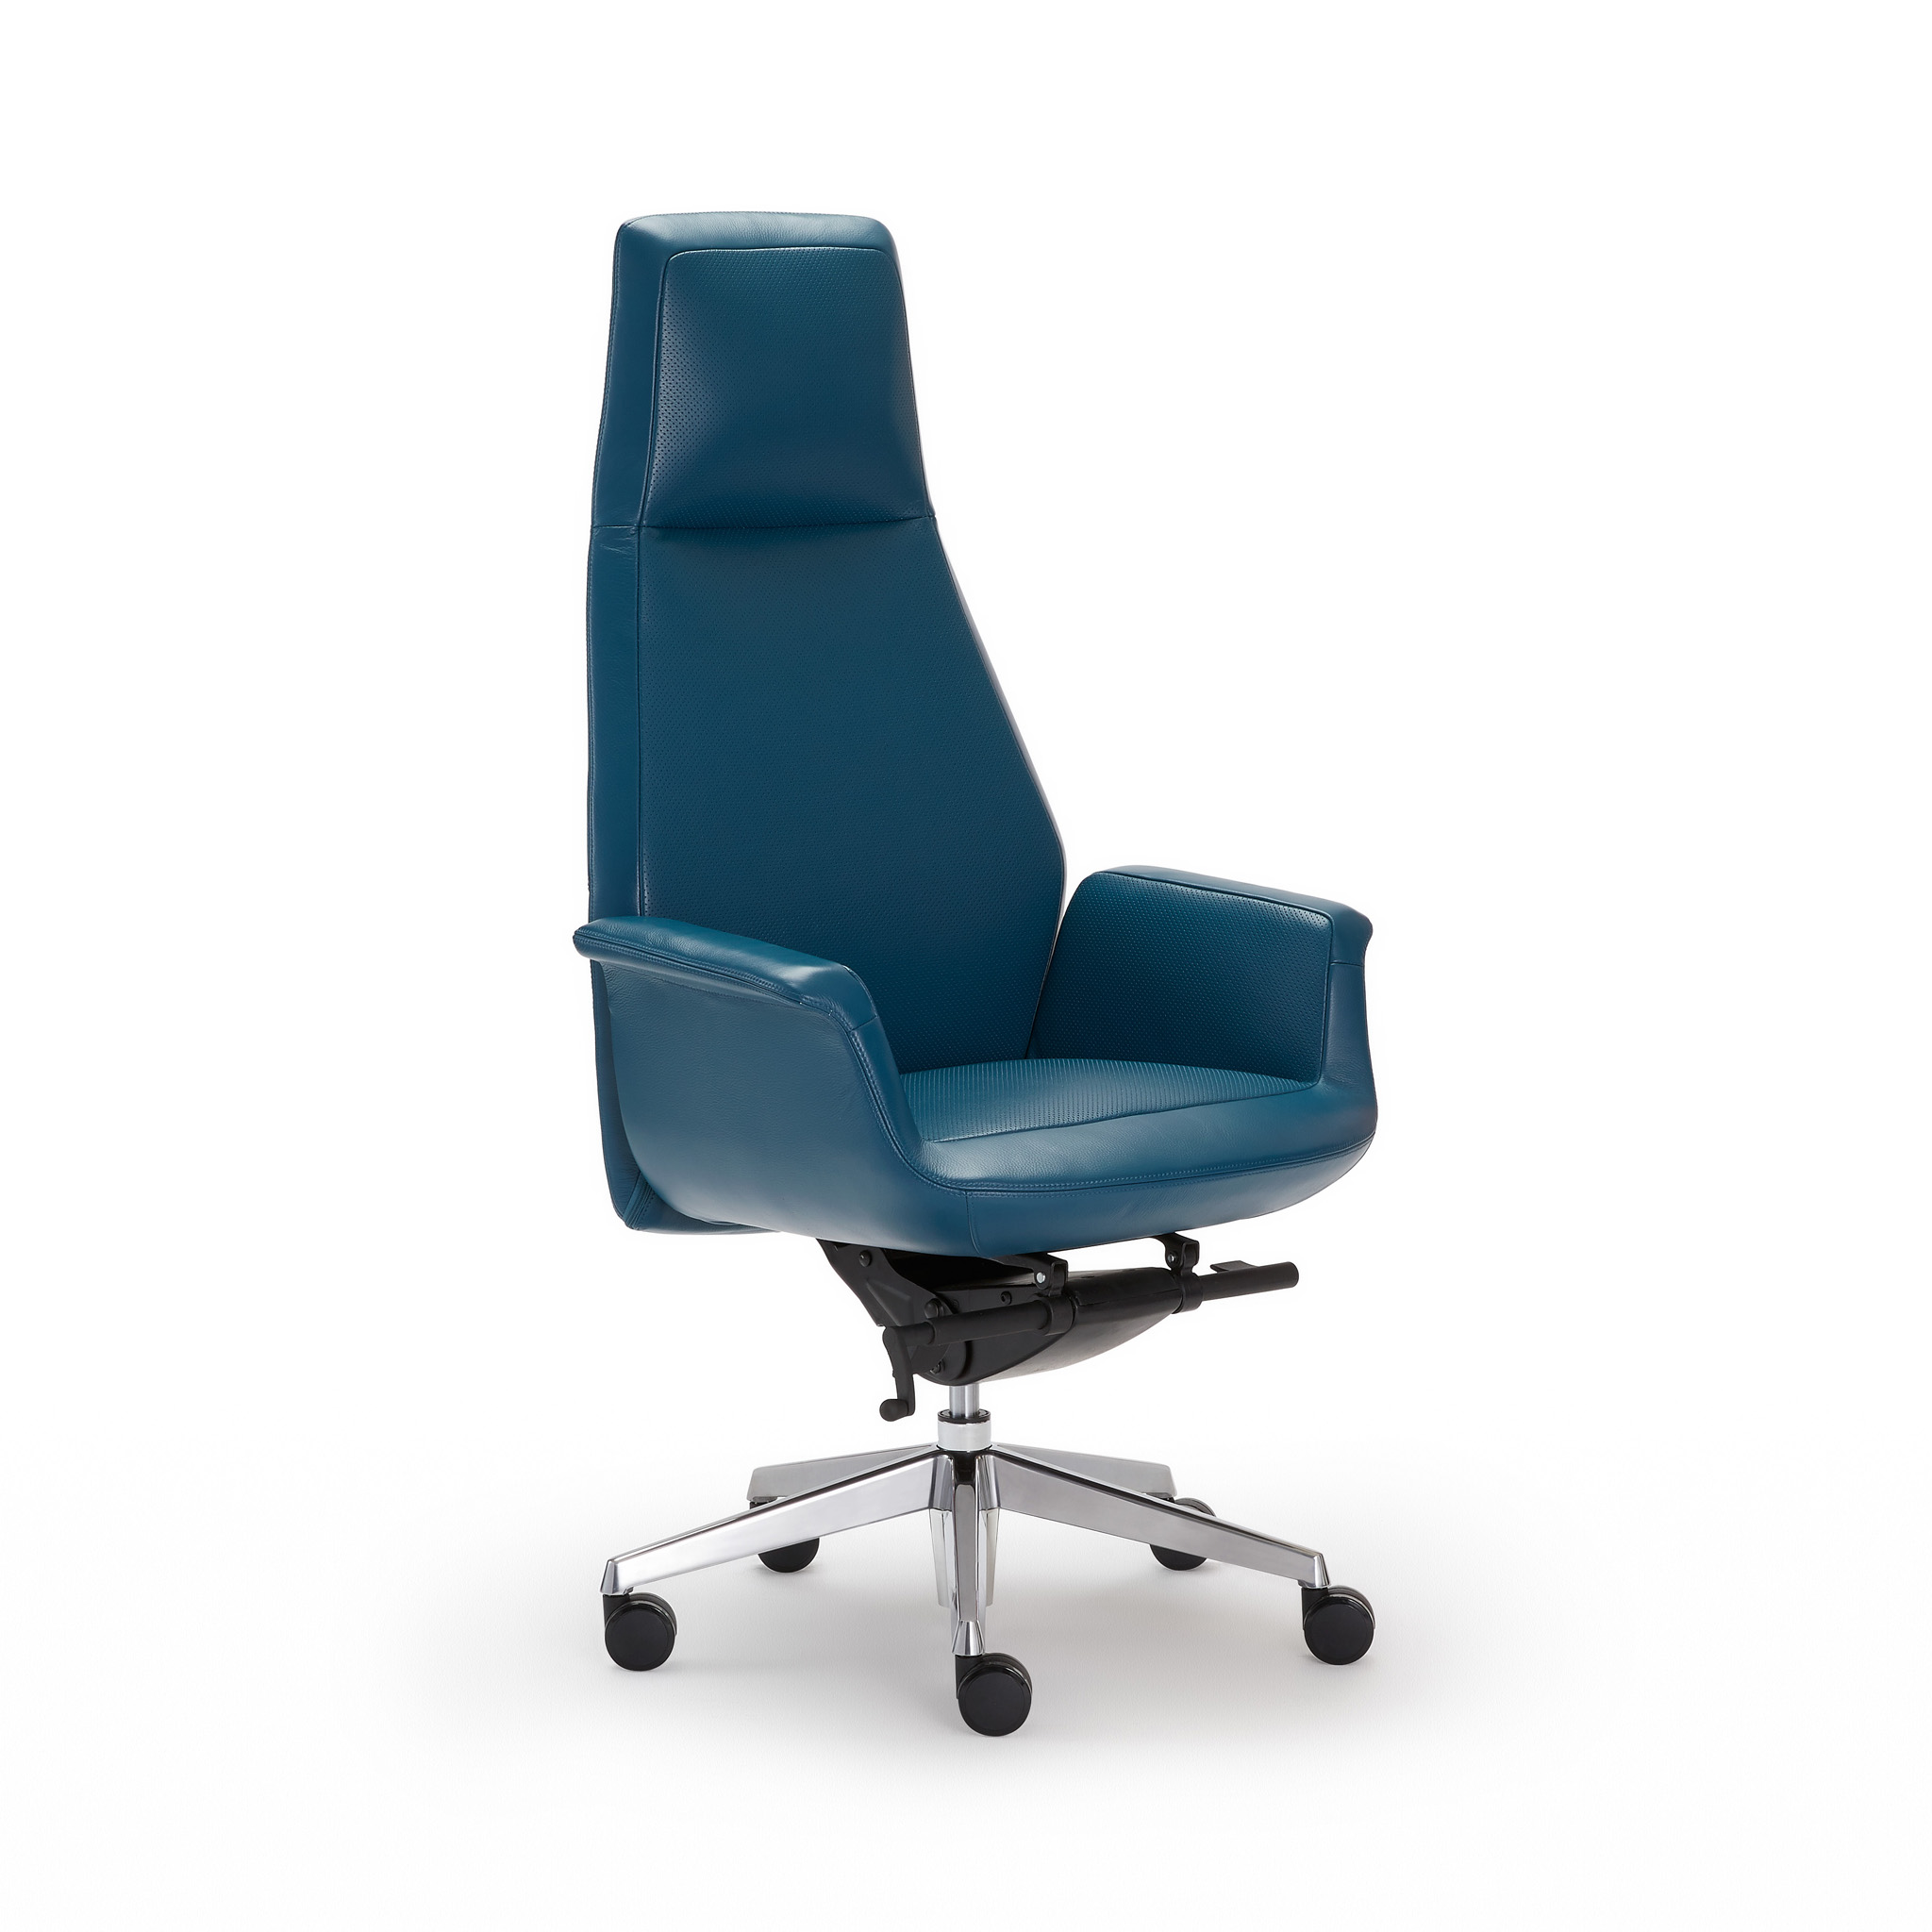 canyon office palm chair workspace multiple today shipping blue back garden product overstock free morelos corliving mesh desk colors home